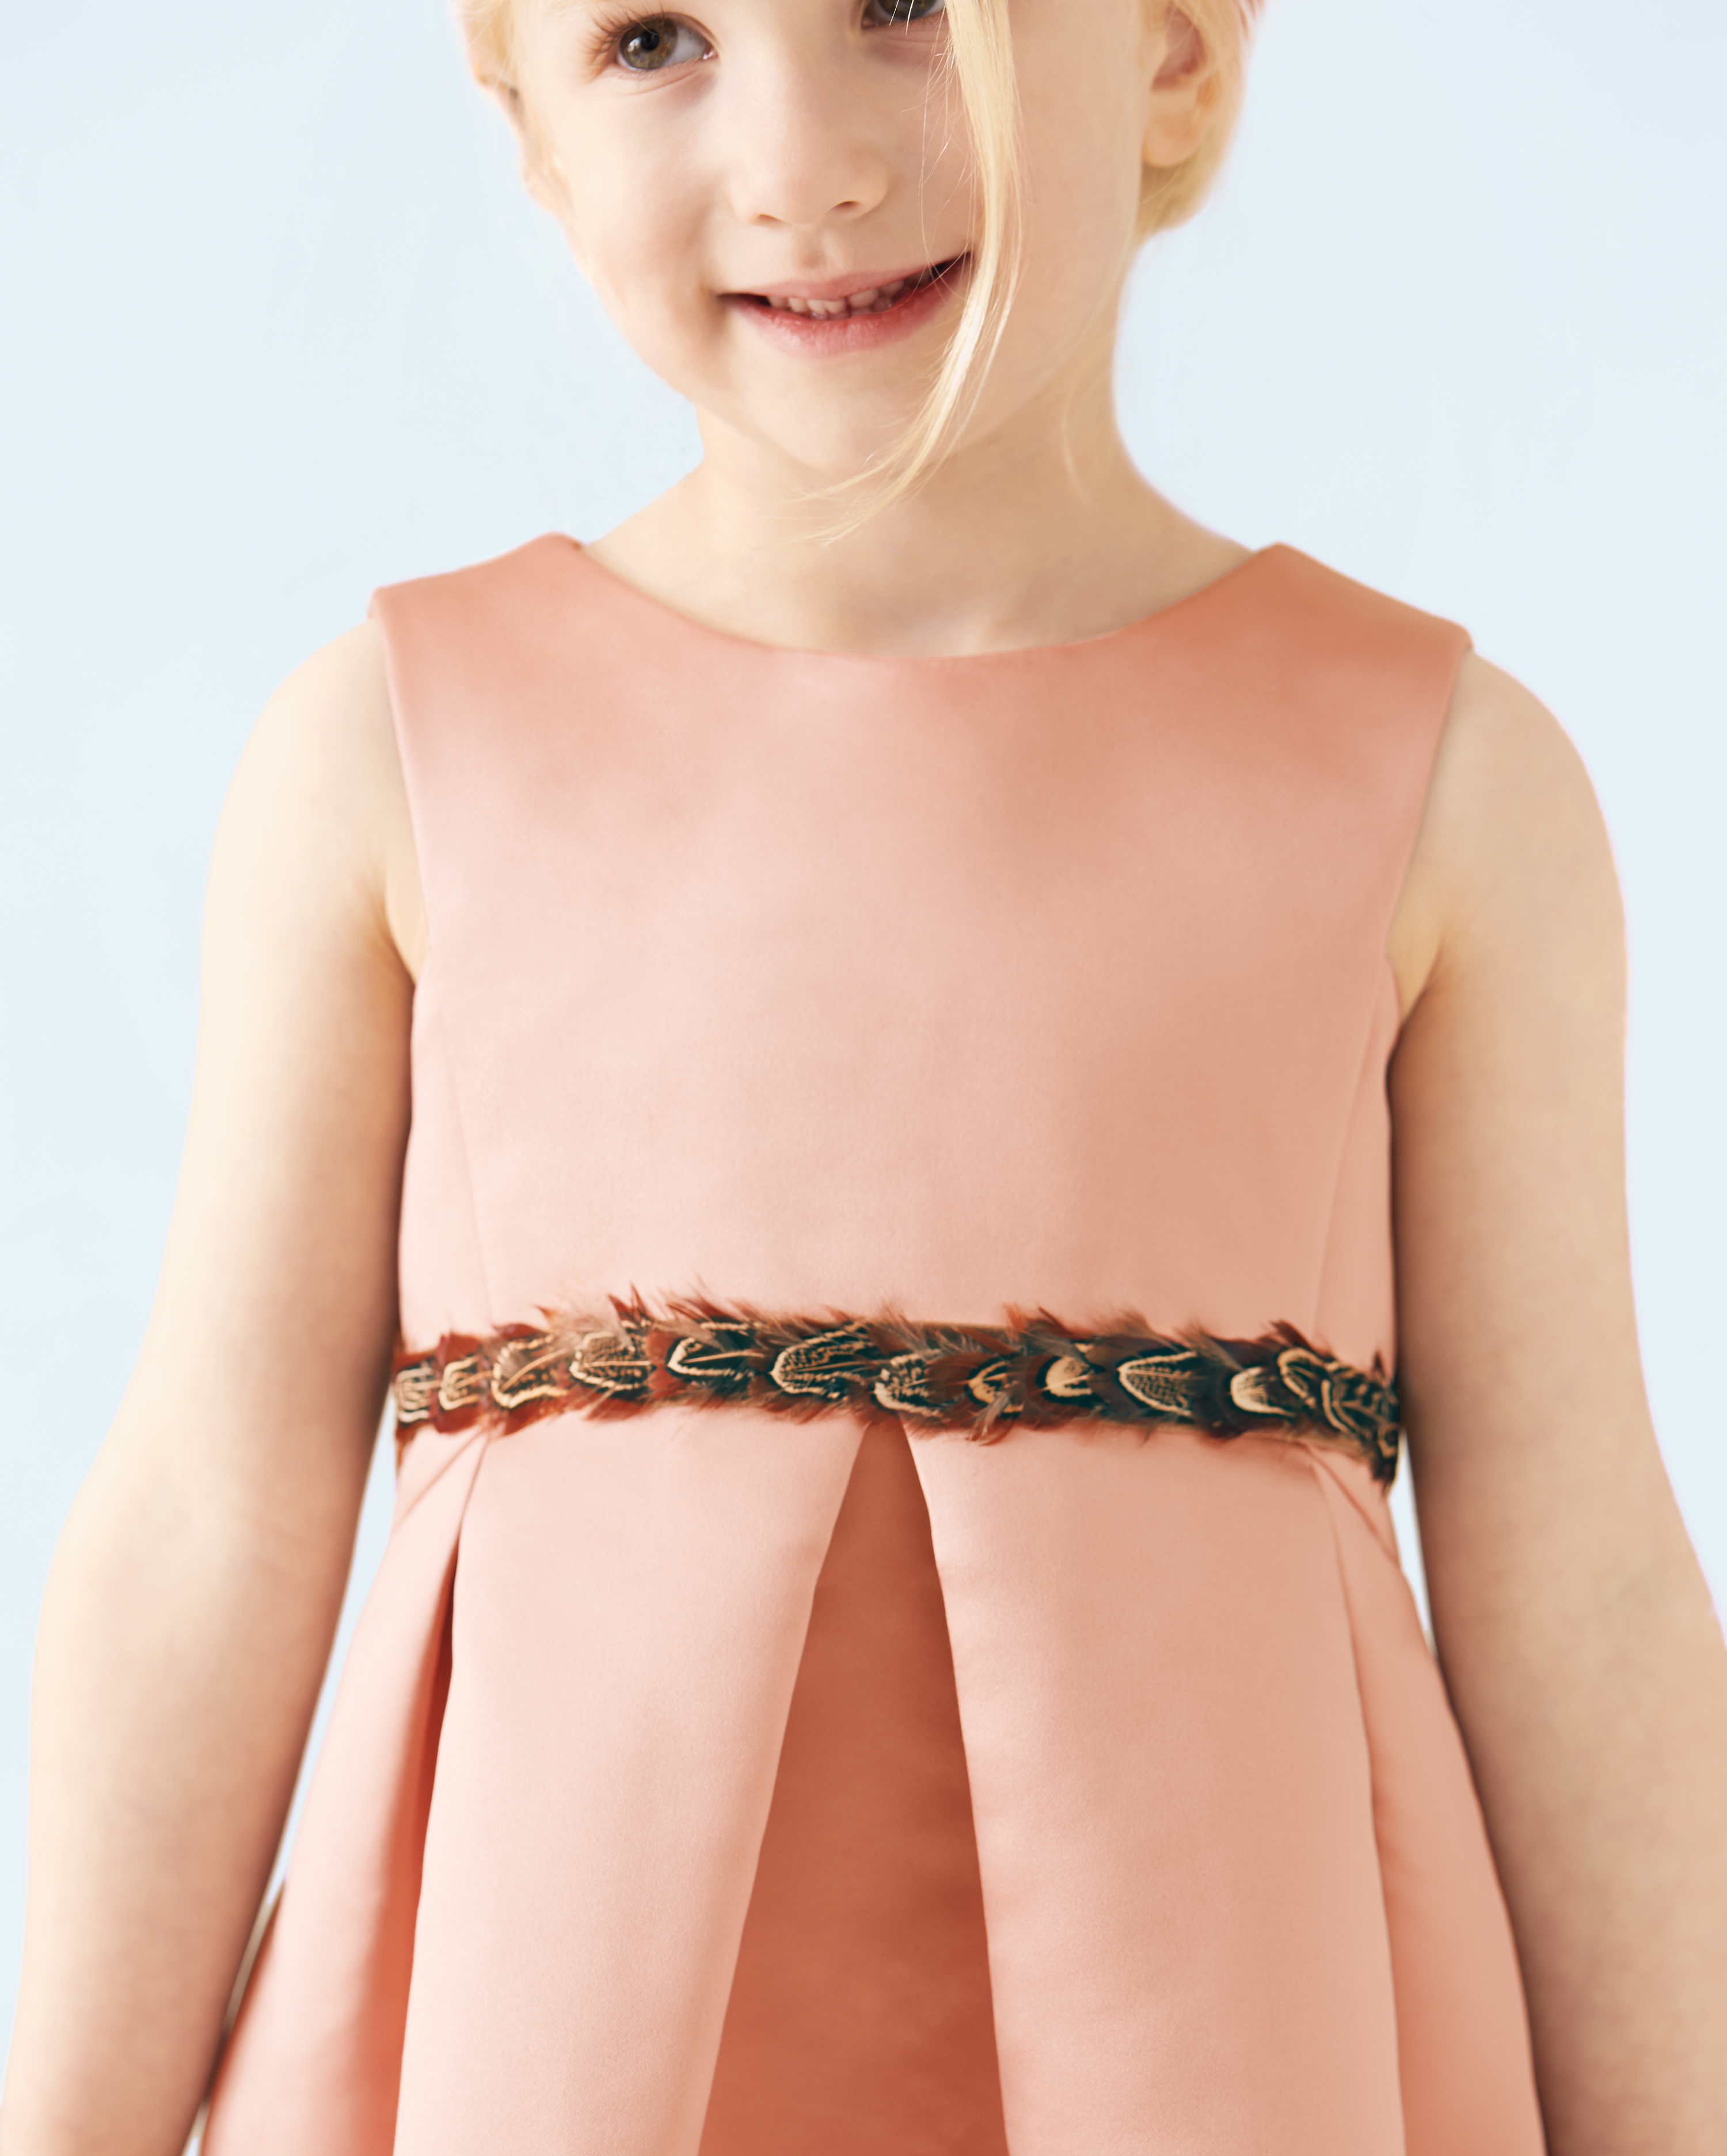 flower-girl-belt-detail-019-d112122.jpg